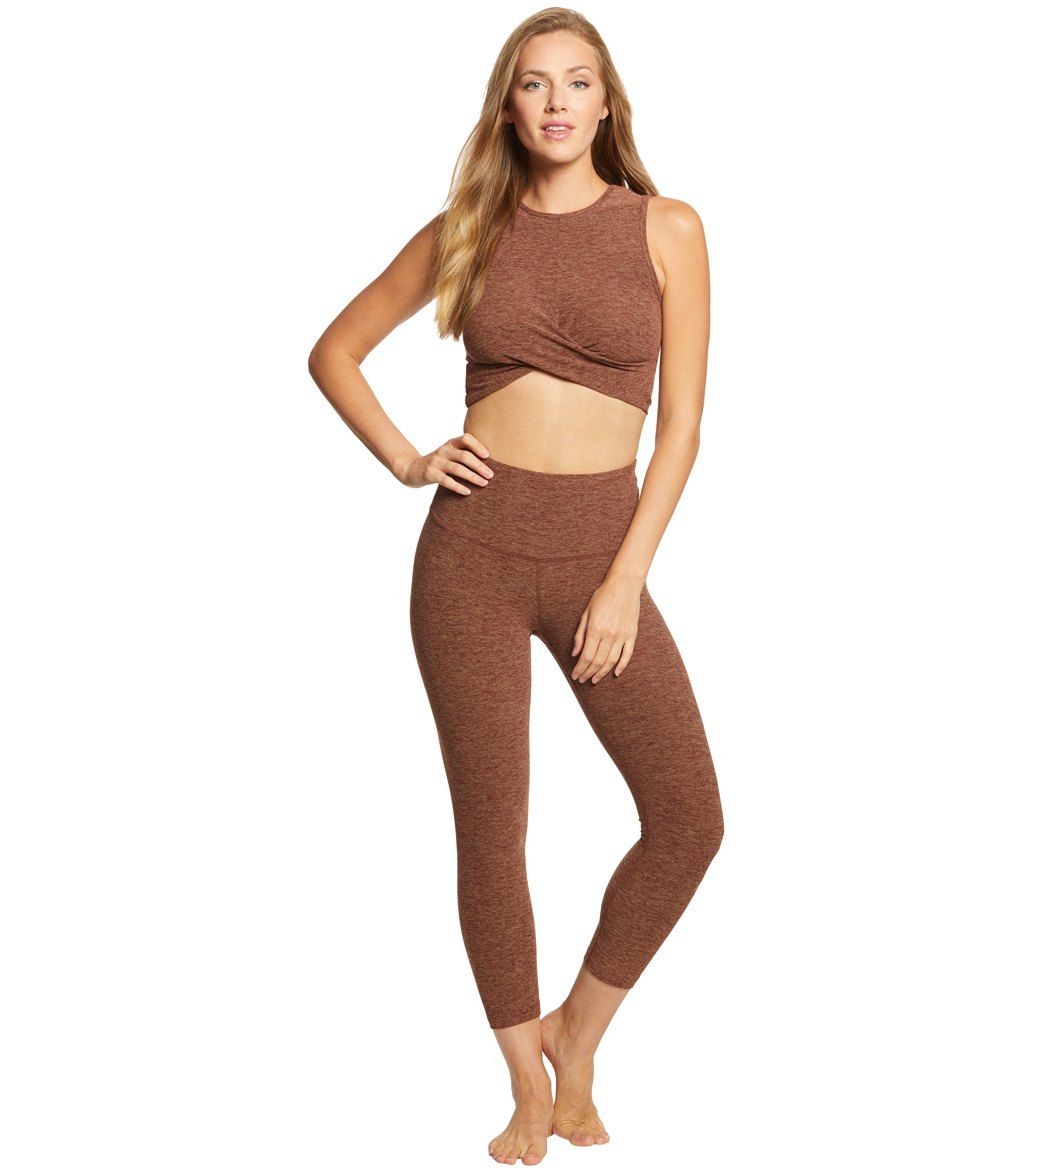 88fde0e87a0ace Beyond Yoga Crossroads Bralette at YogaOutlet.com - Free Shipping ...